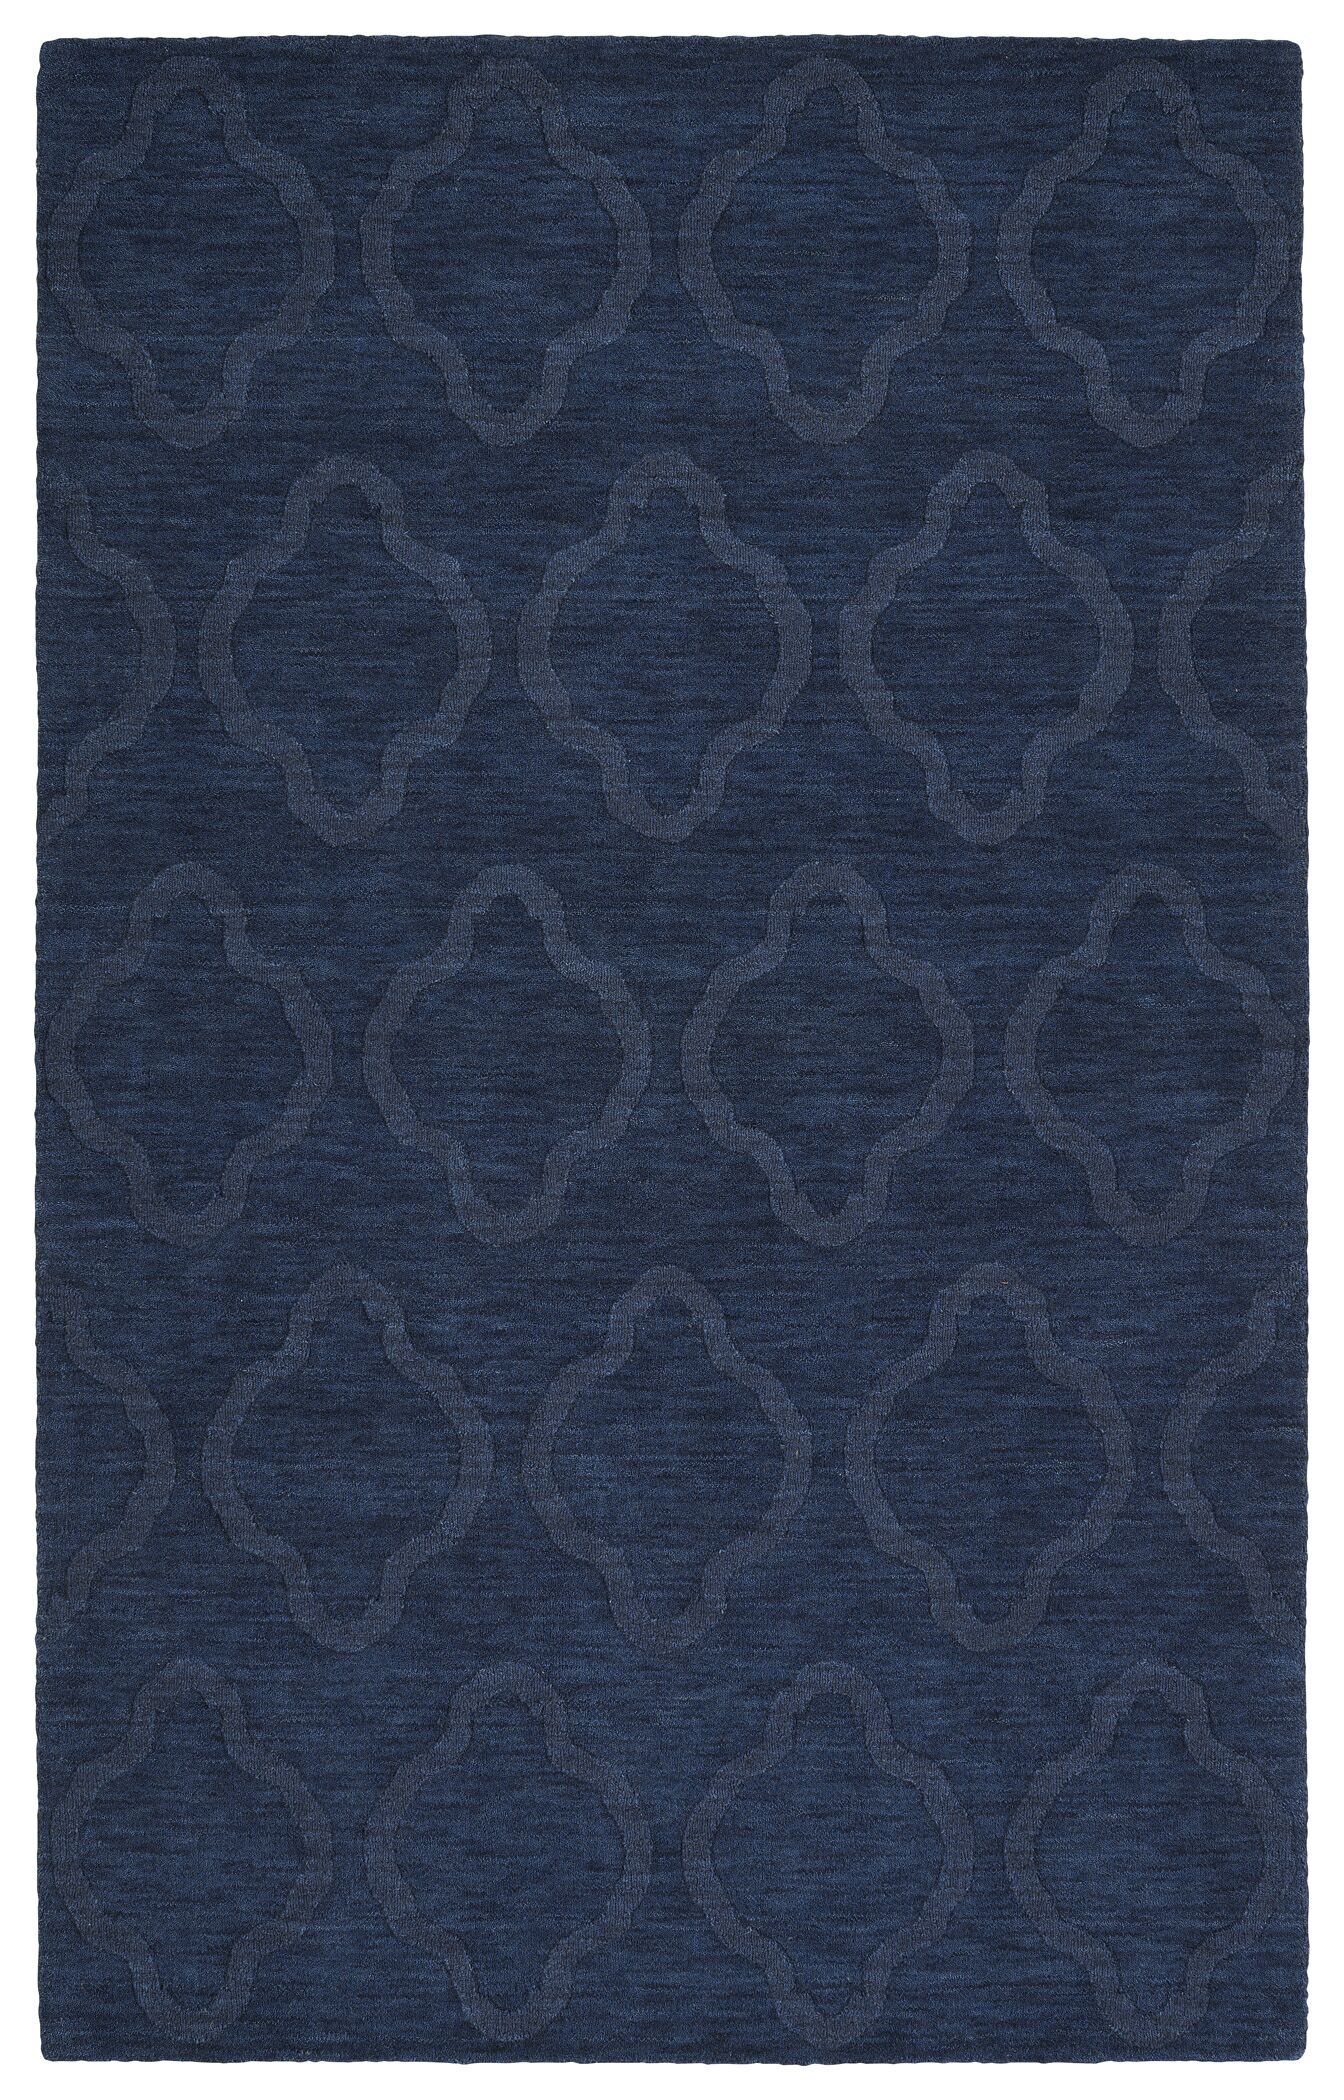 Dobson Handmade Navy Geometric Area Rug Rug Size: Rectangle 5' x 8'